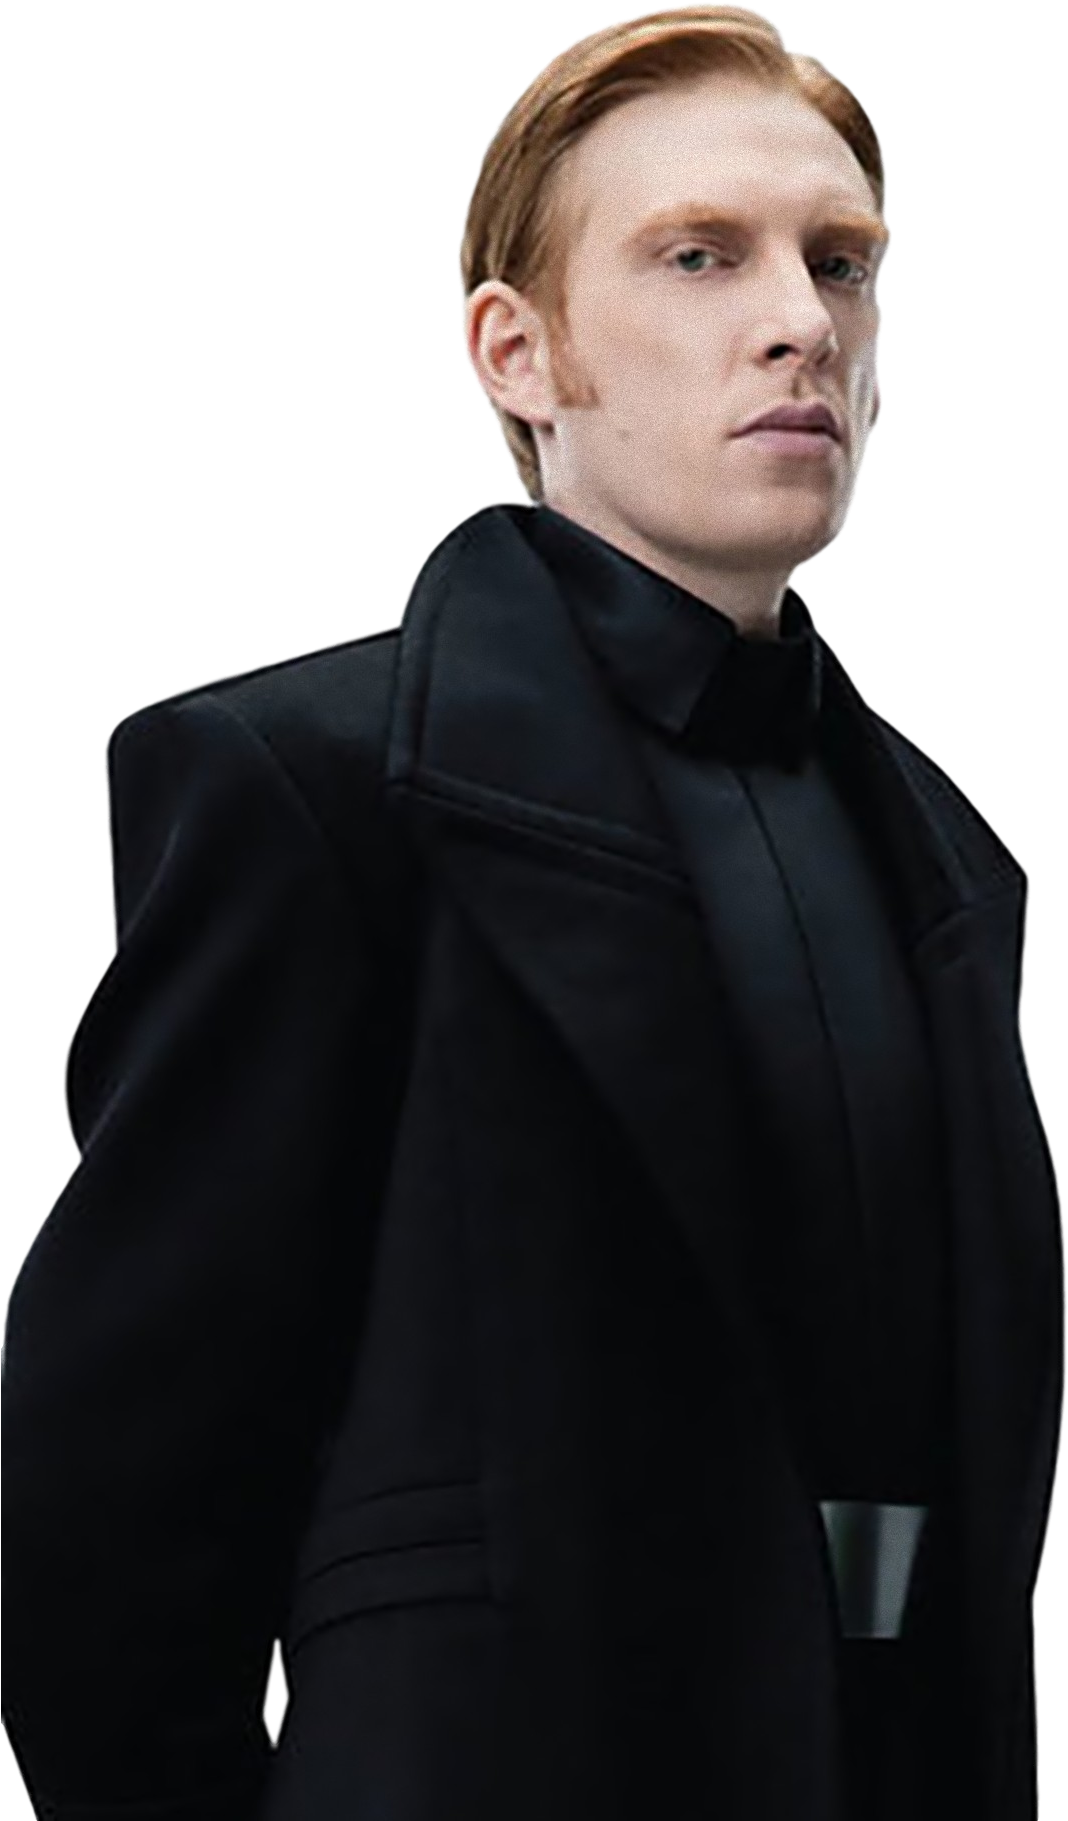 Transparent hitler kylo ren. Download hd general hux